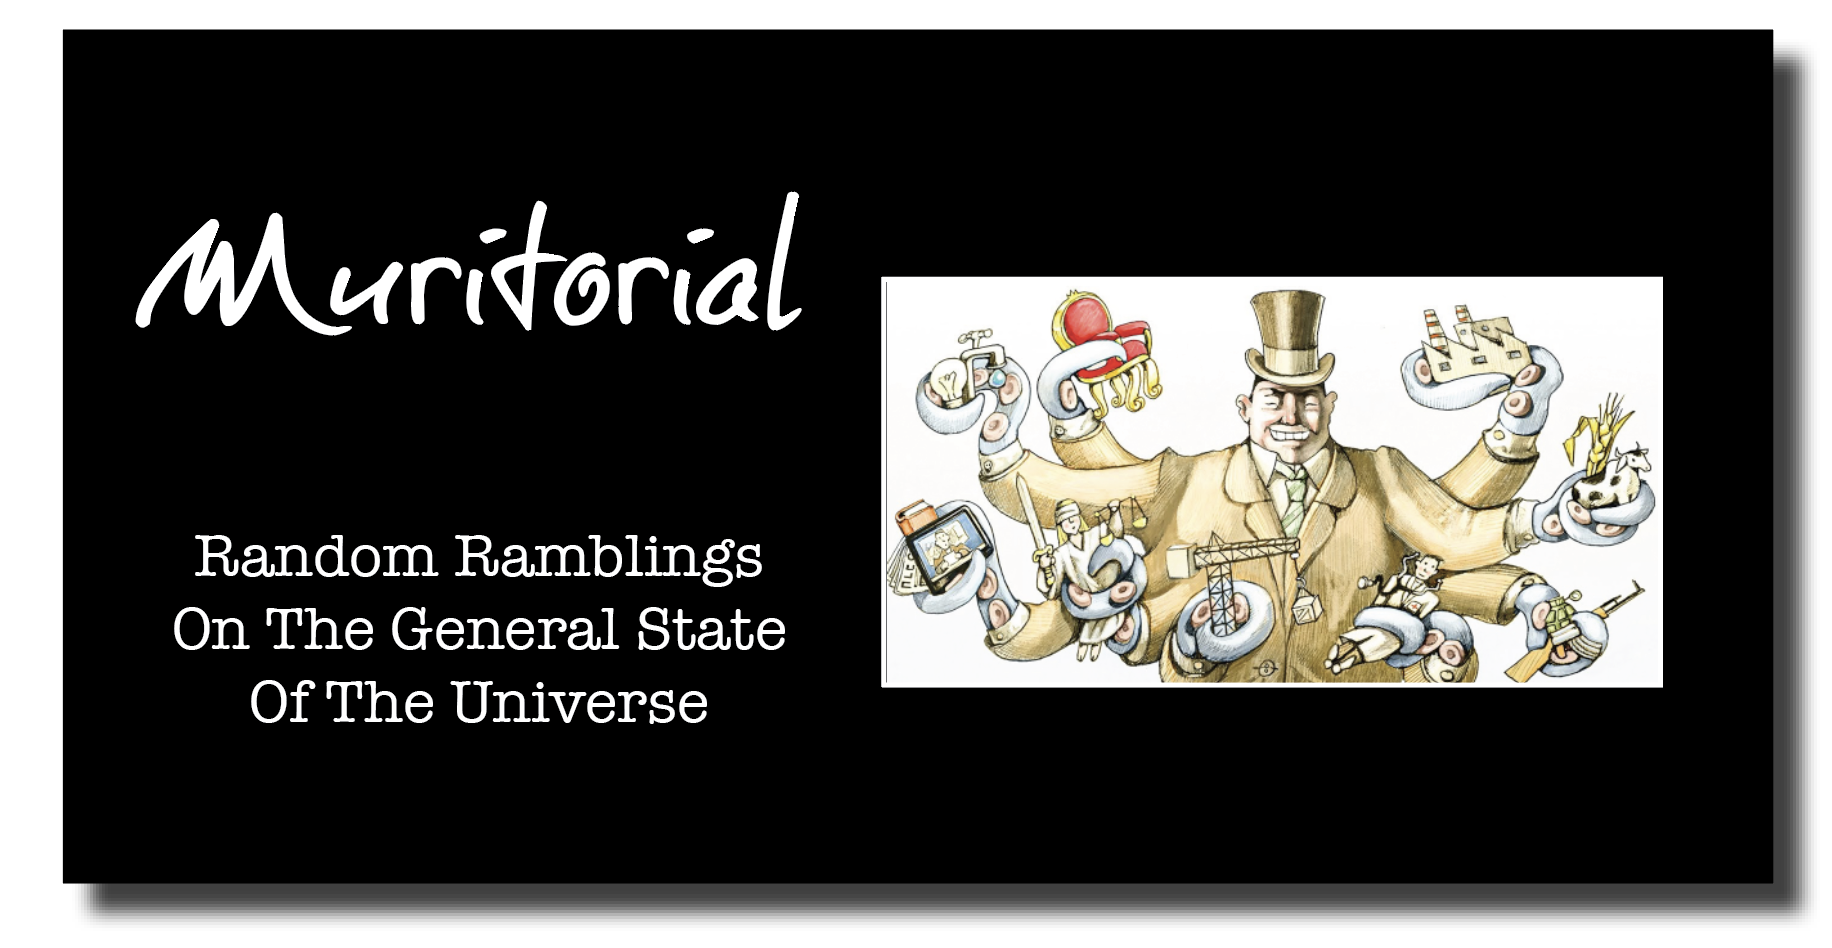 acs  Random Ramblings On The General State Of The Universe